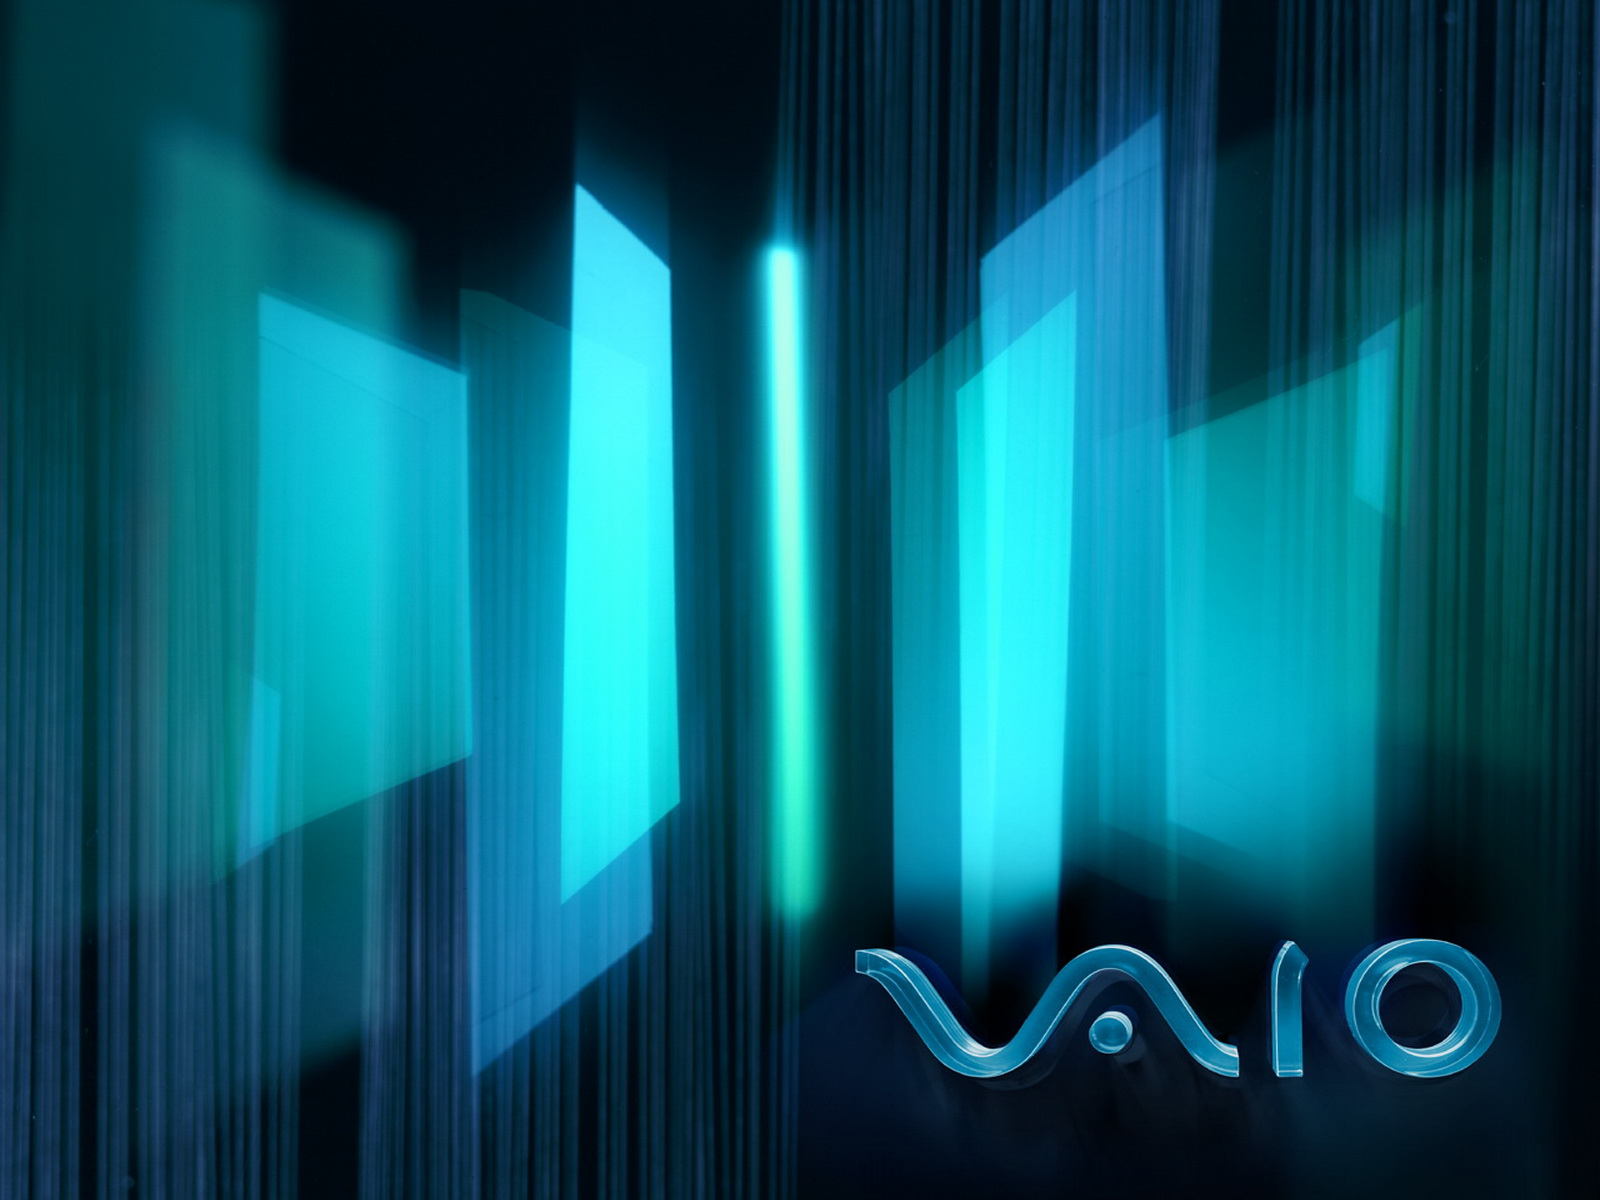 HD Sony Vaio Wallpapers Vaio Backgrounds For Download 1600x1200